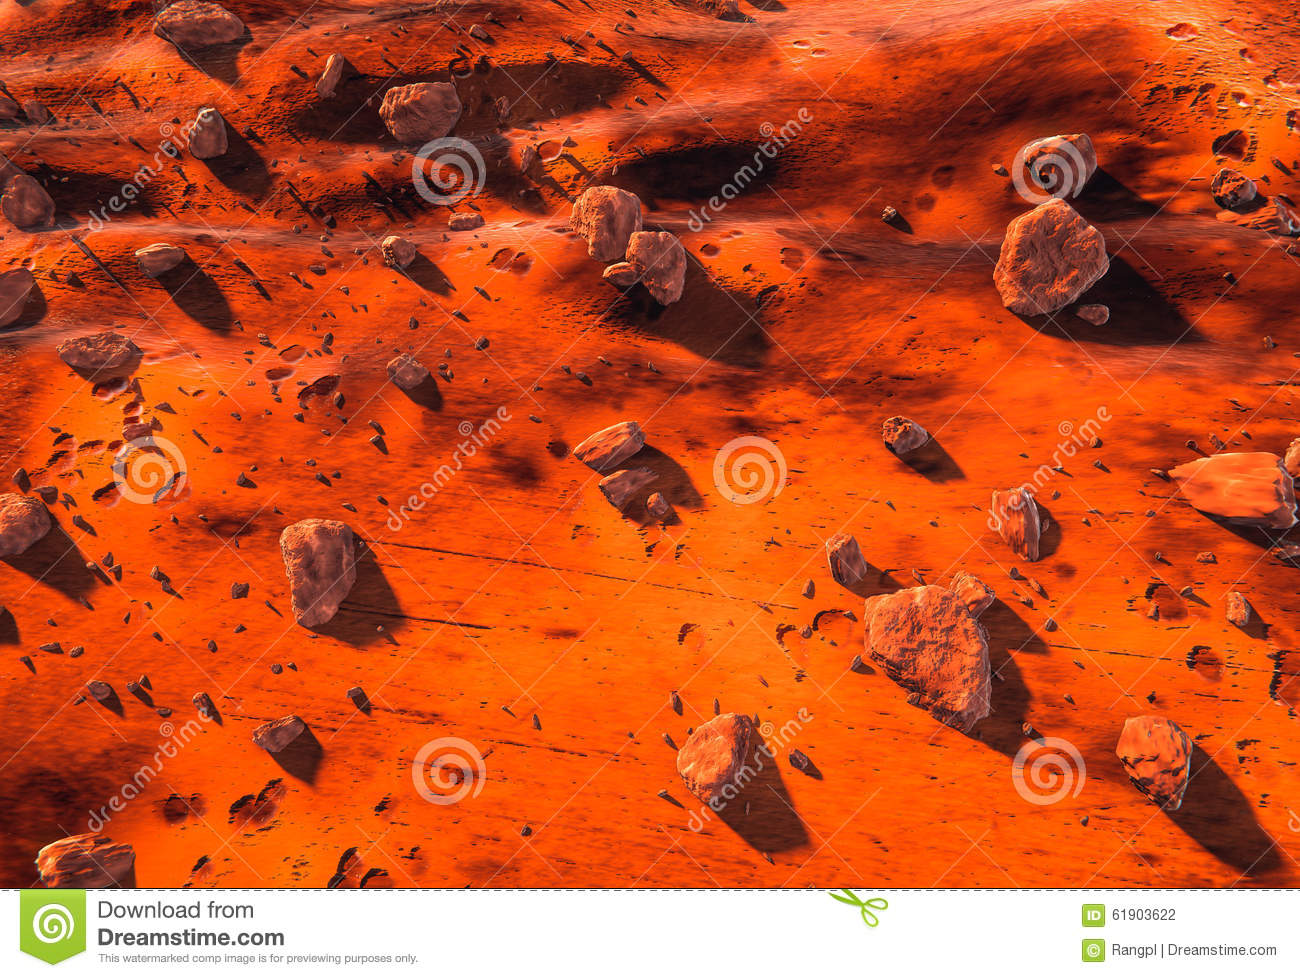 red planet mars surface - photo #17